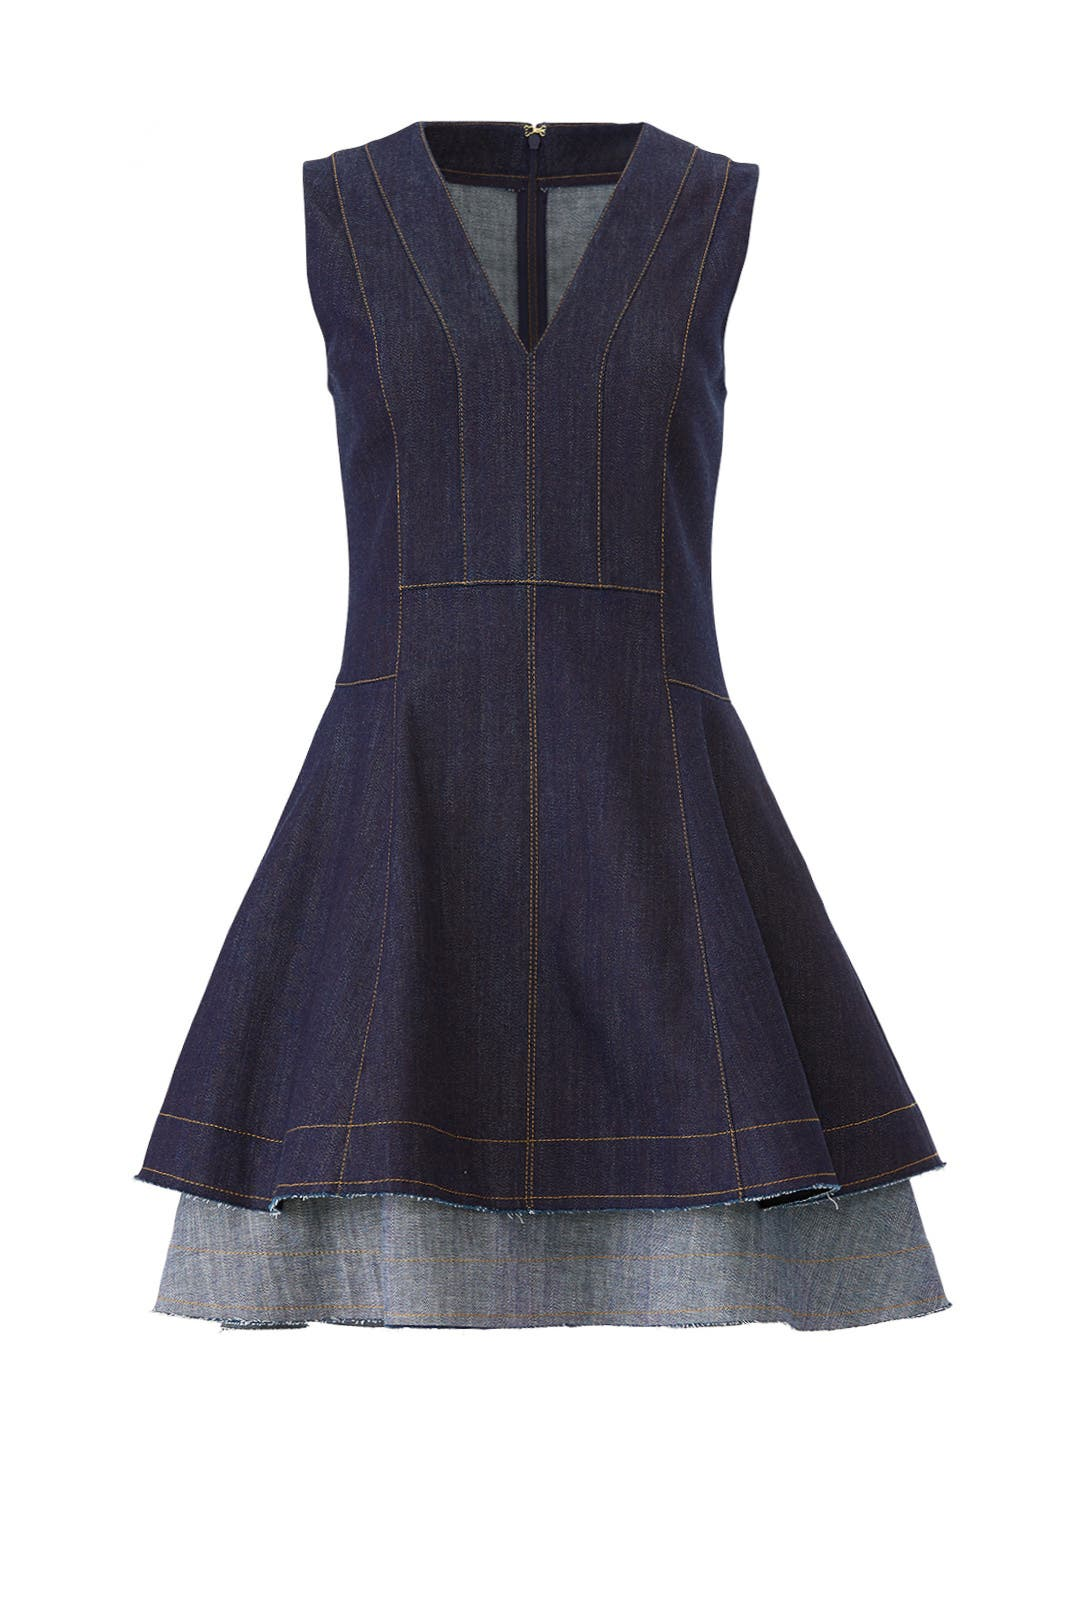 Denim Fit And Flare Dress By Derek Lam 10 Crosby For 70 The Runway